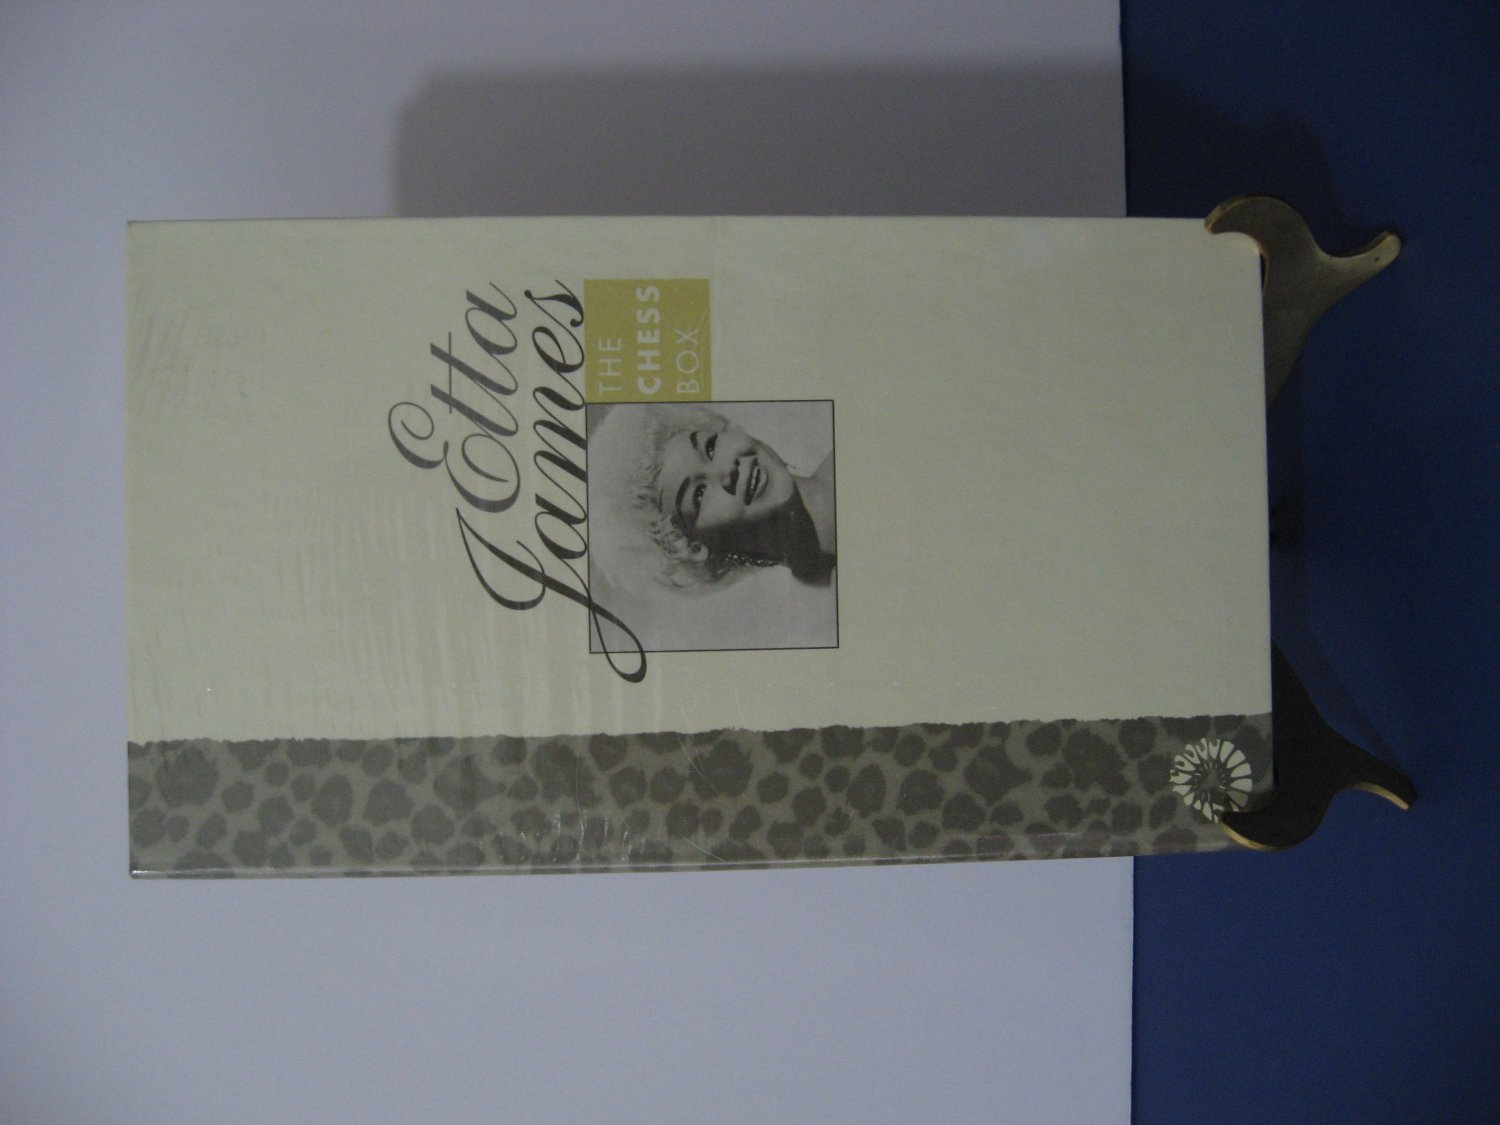 NEW! Sealed! - Etta James - The Chess Box - 3 CD Set! - Compact Disc